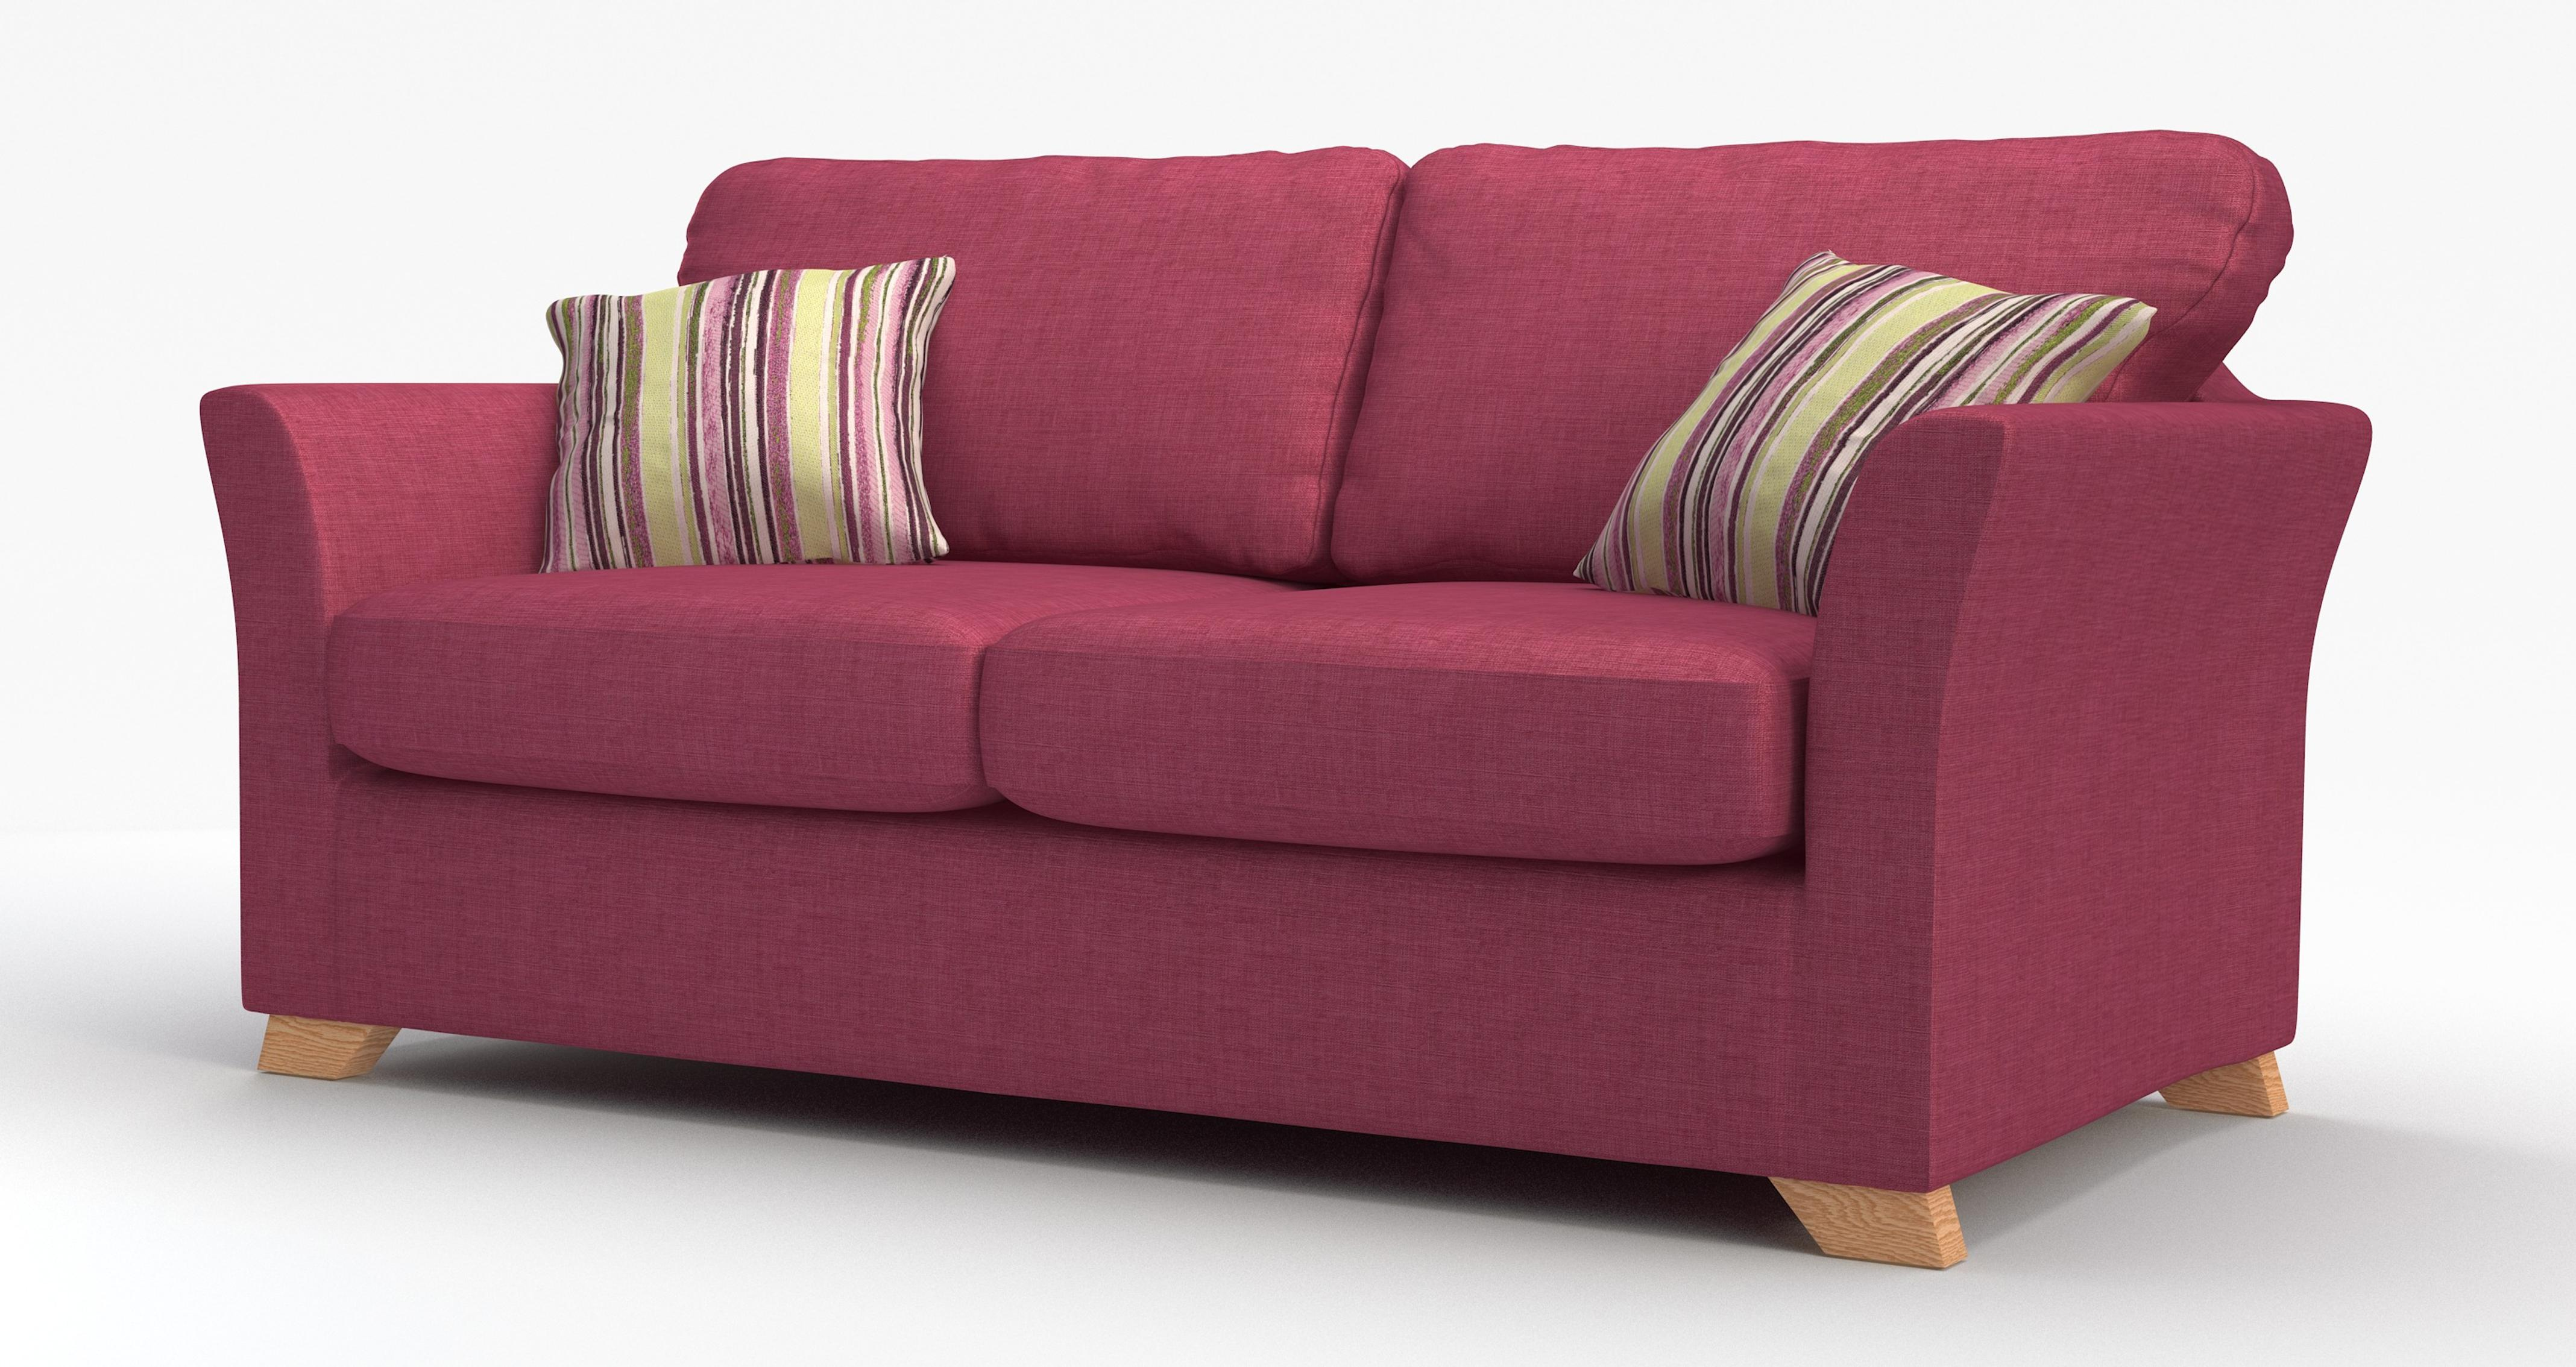 furniture purchase and dfs 85 reviews from dfs employees about dfs culture, salaries, benefits, work-life   them feel like there really is no better place than dfs to purchase their sofa.